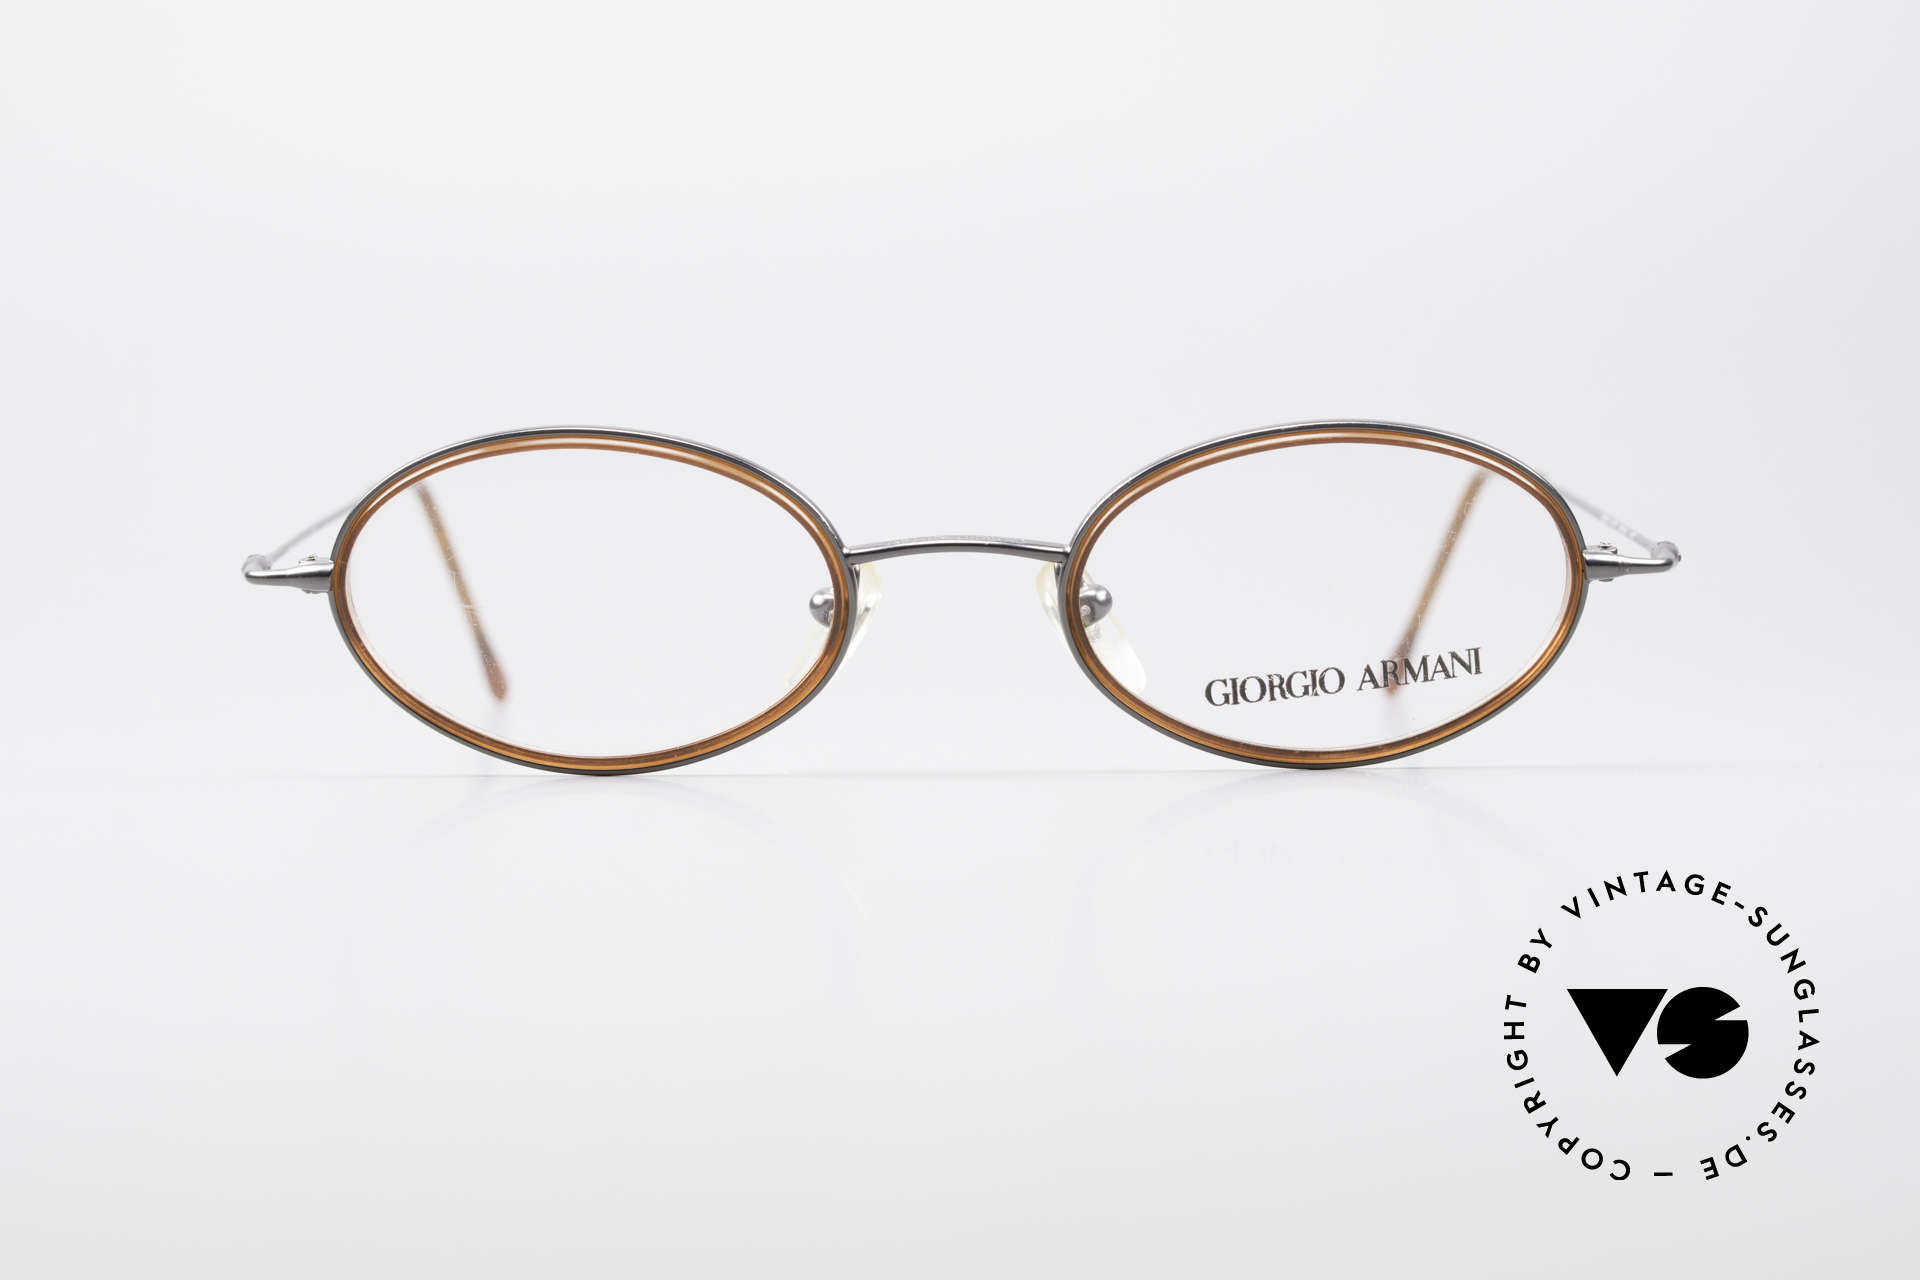 Giorgio Armani 1012 Oval Vintage Unisex Frame, discreet oval metal frame in tangible top-quality, Made for Men and Women